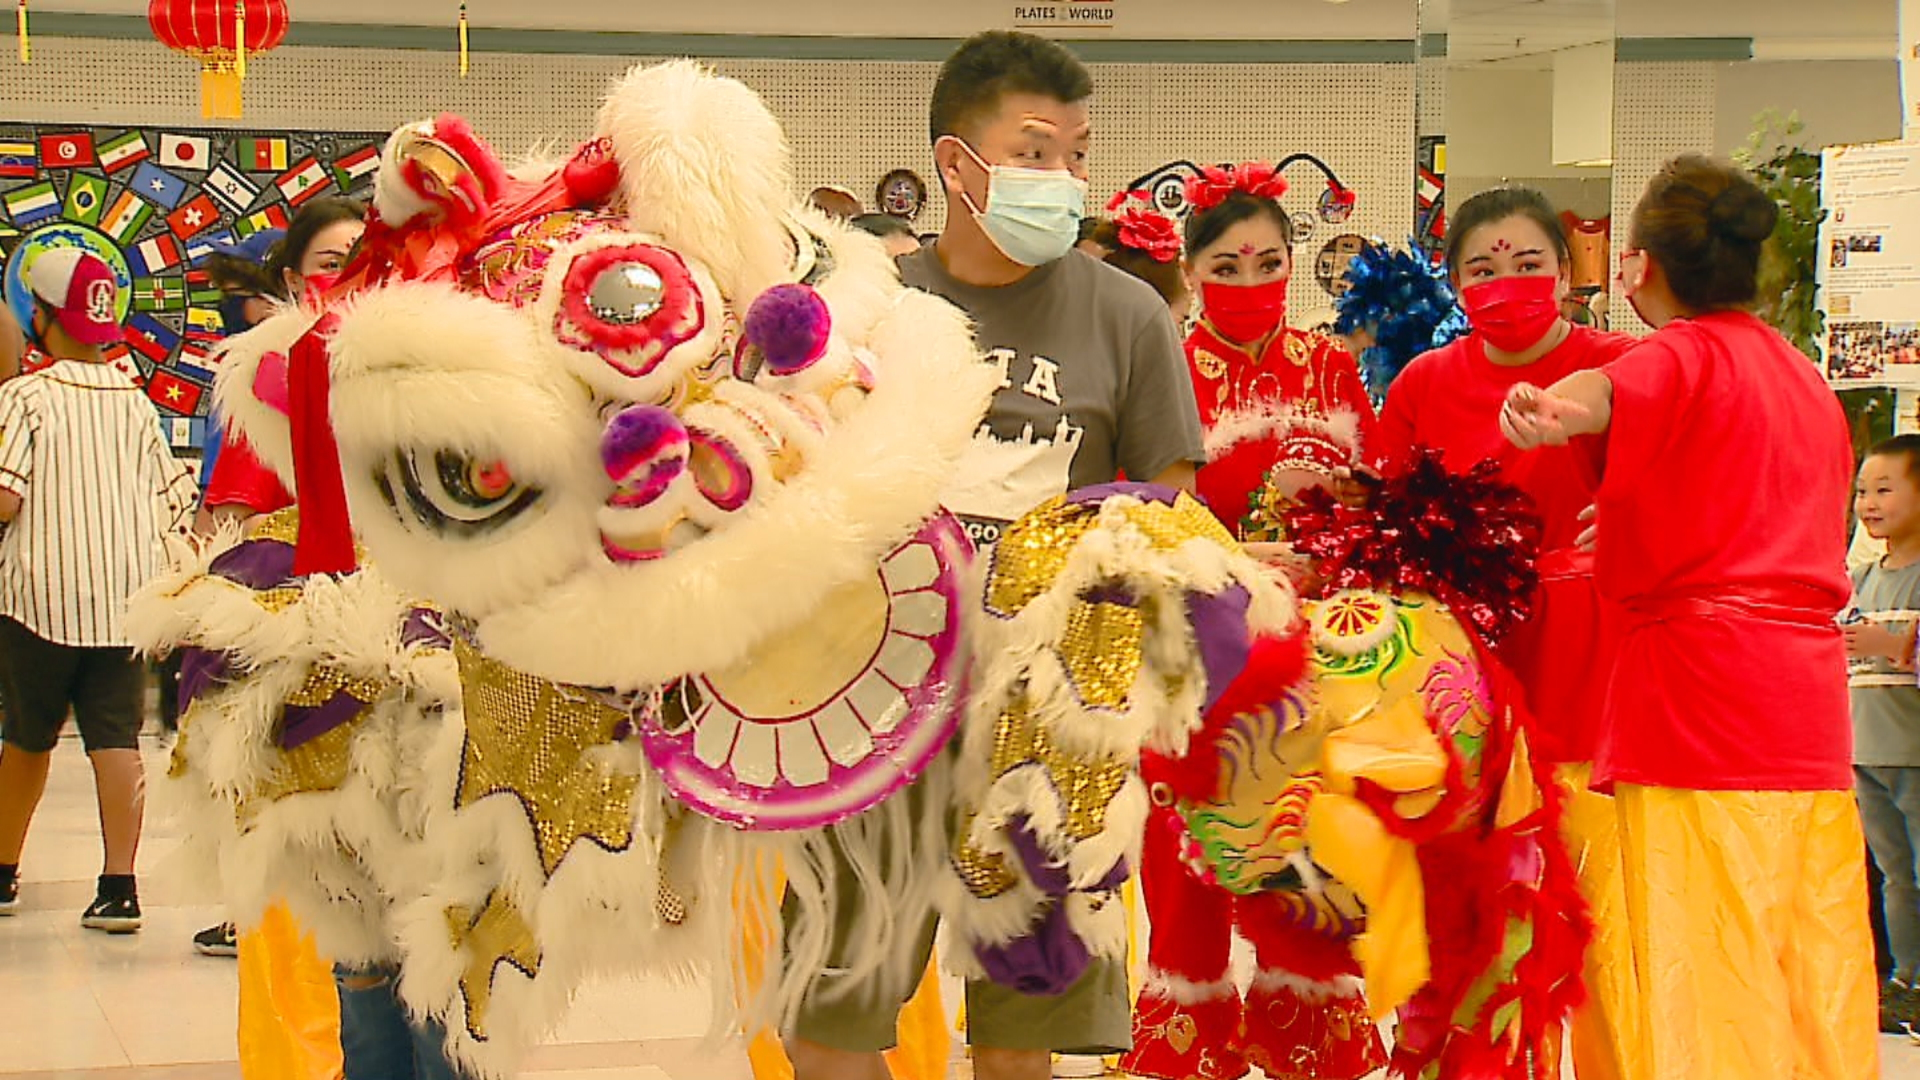 www.wishtv.com: Asian Fest offers unity, healing during COVID-19 pandemic - WISH-TV